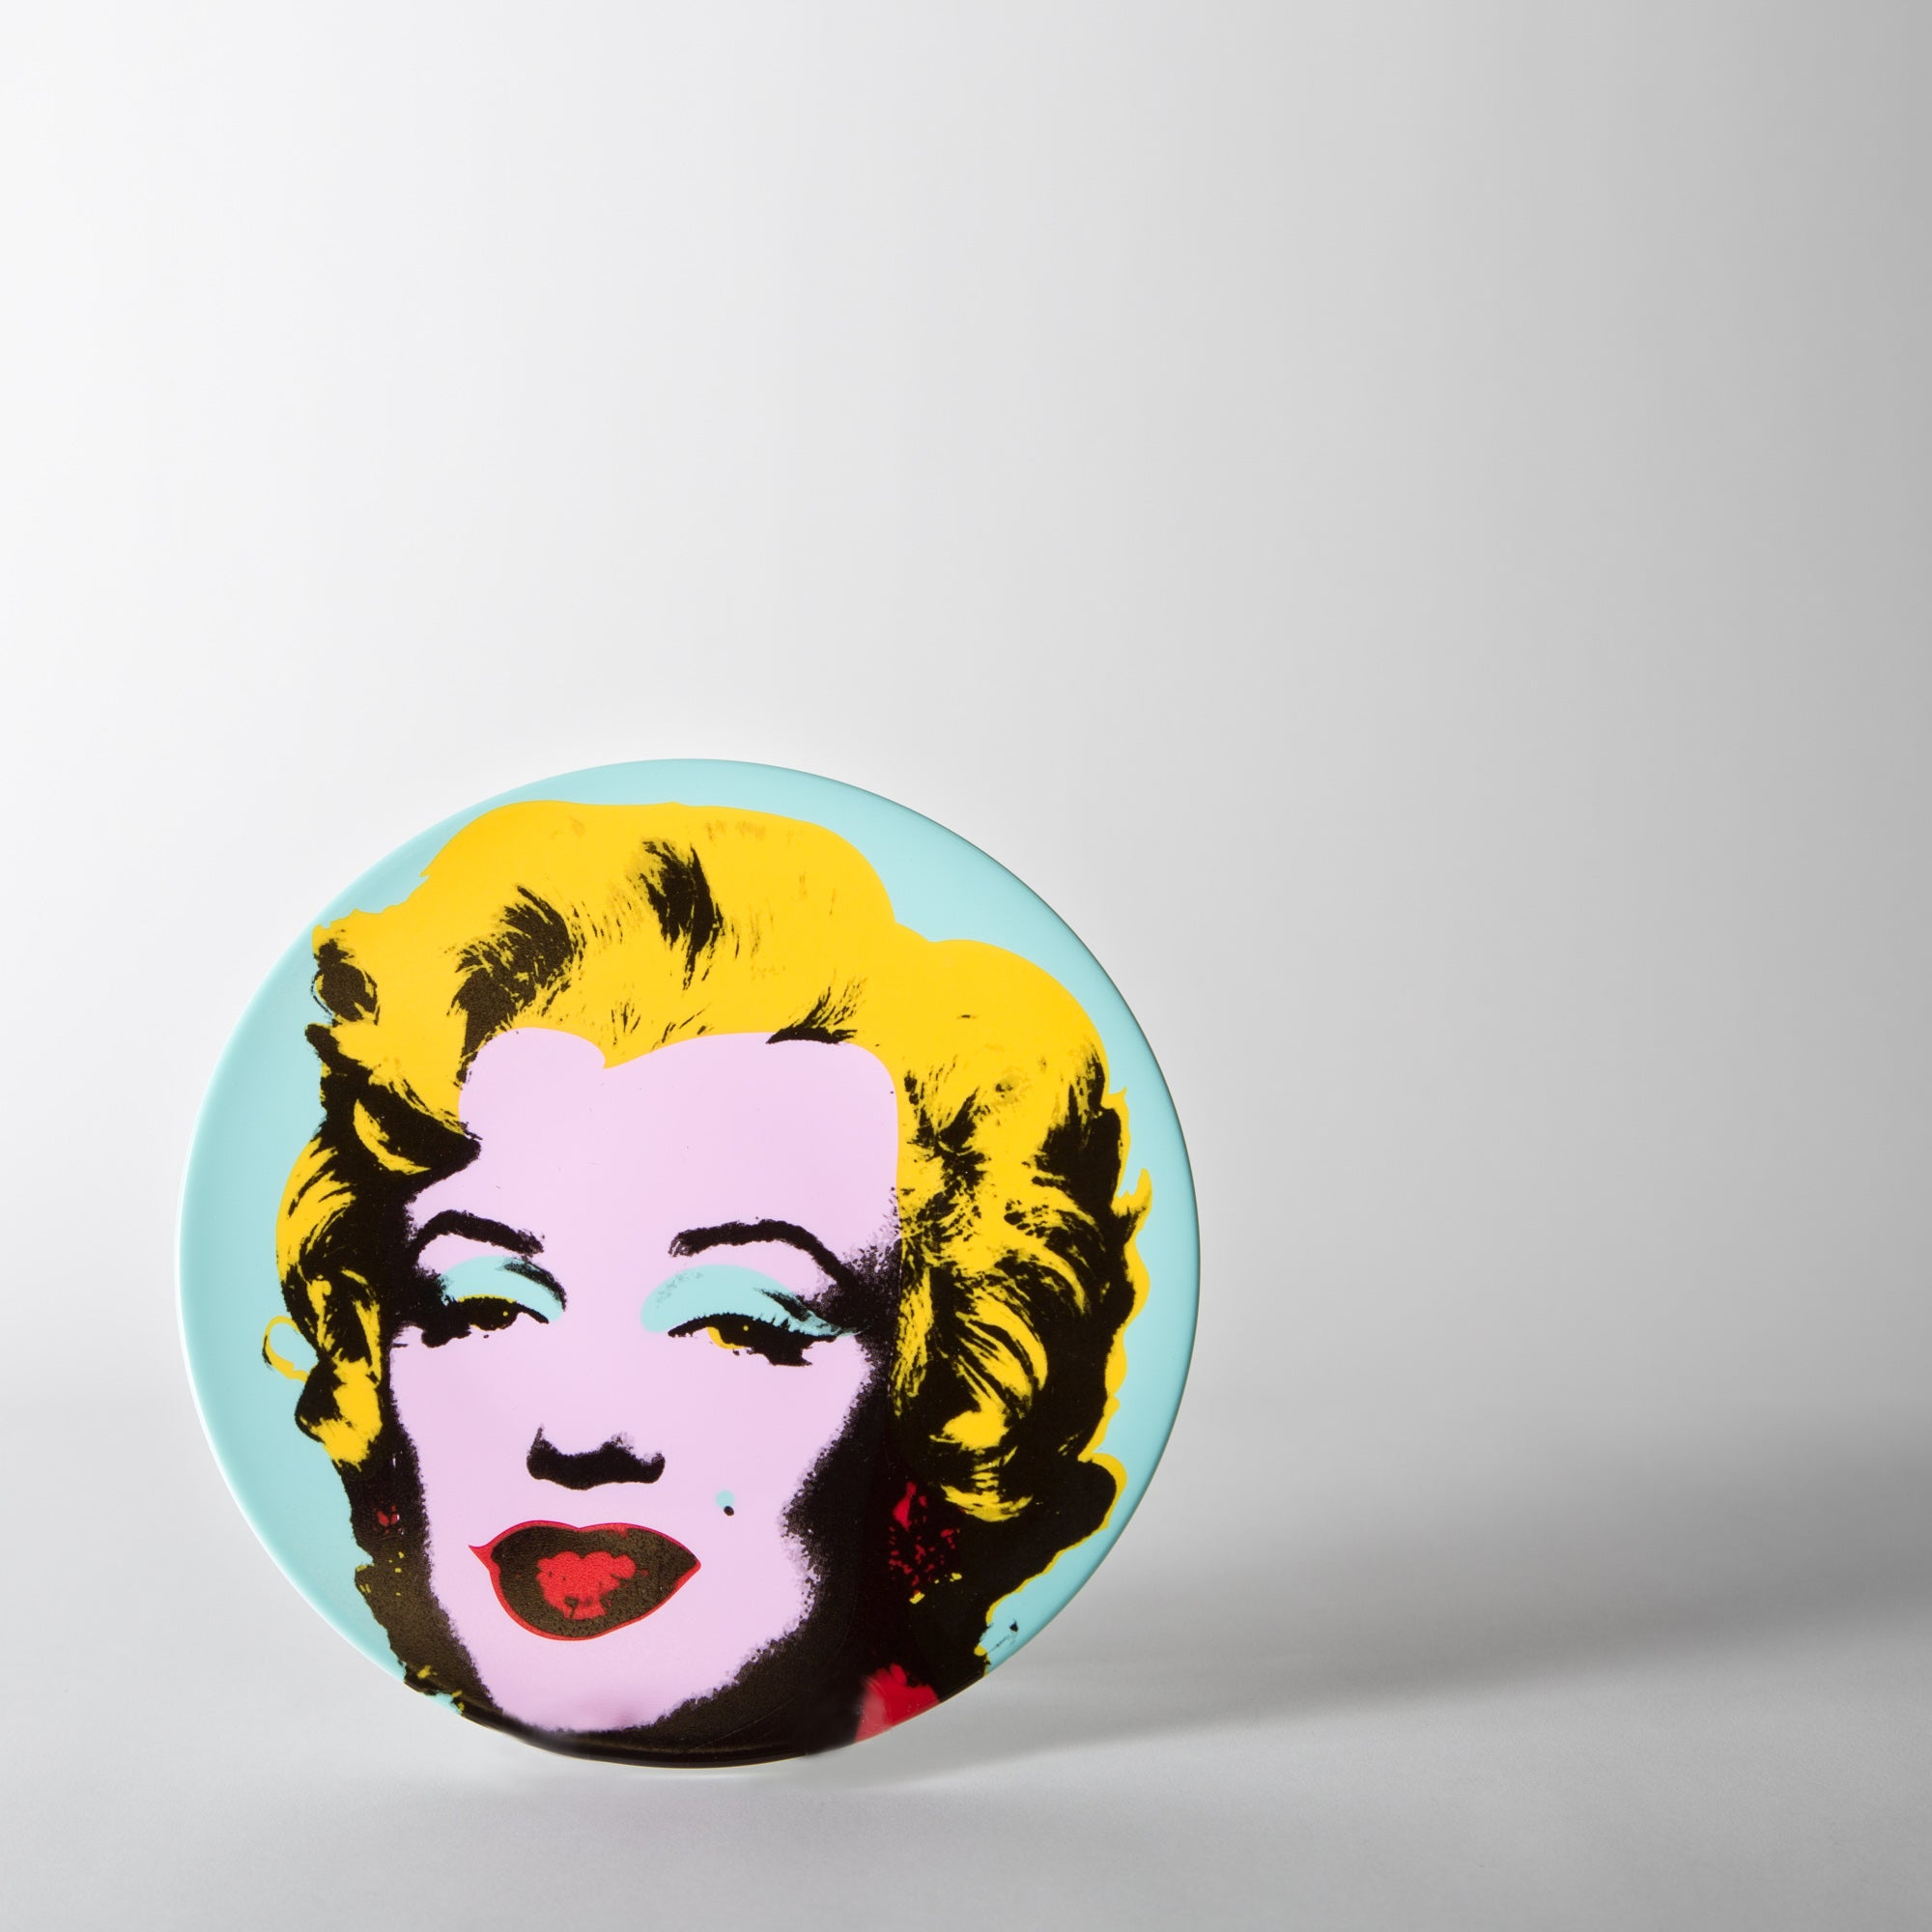 Andy Warhol - 'Blue Marilyn' Plate